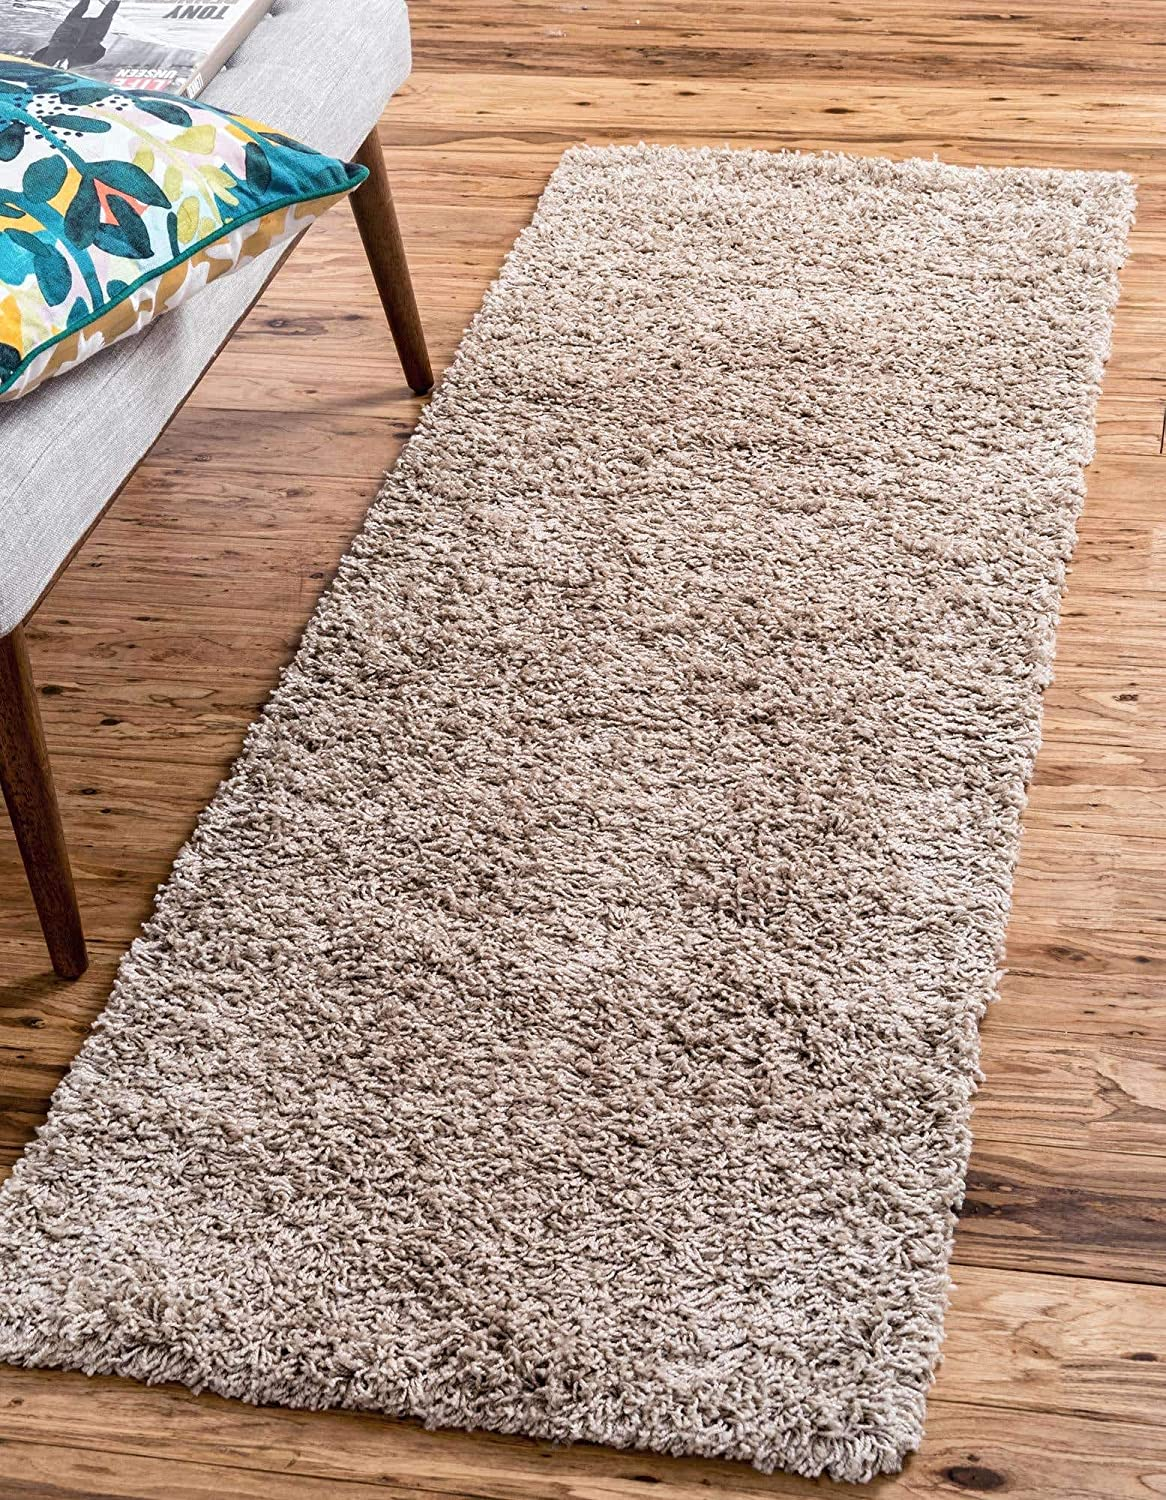 Unique Loom Solo Solid Shag Collection Modern Plush Taupe Runner Rug (2' 6 x 13' 0)